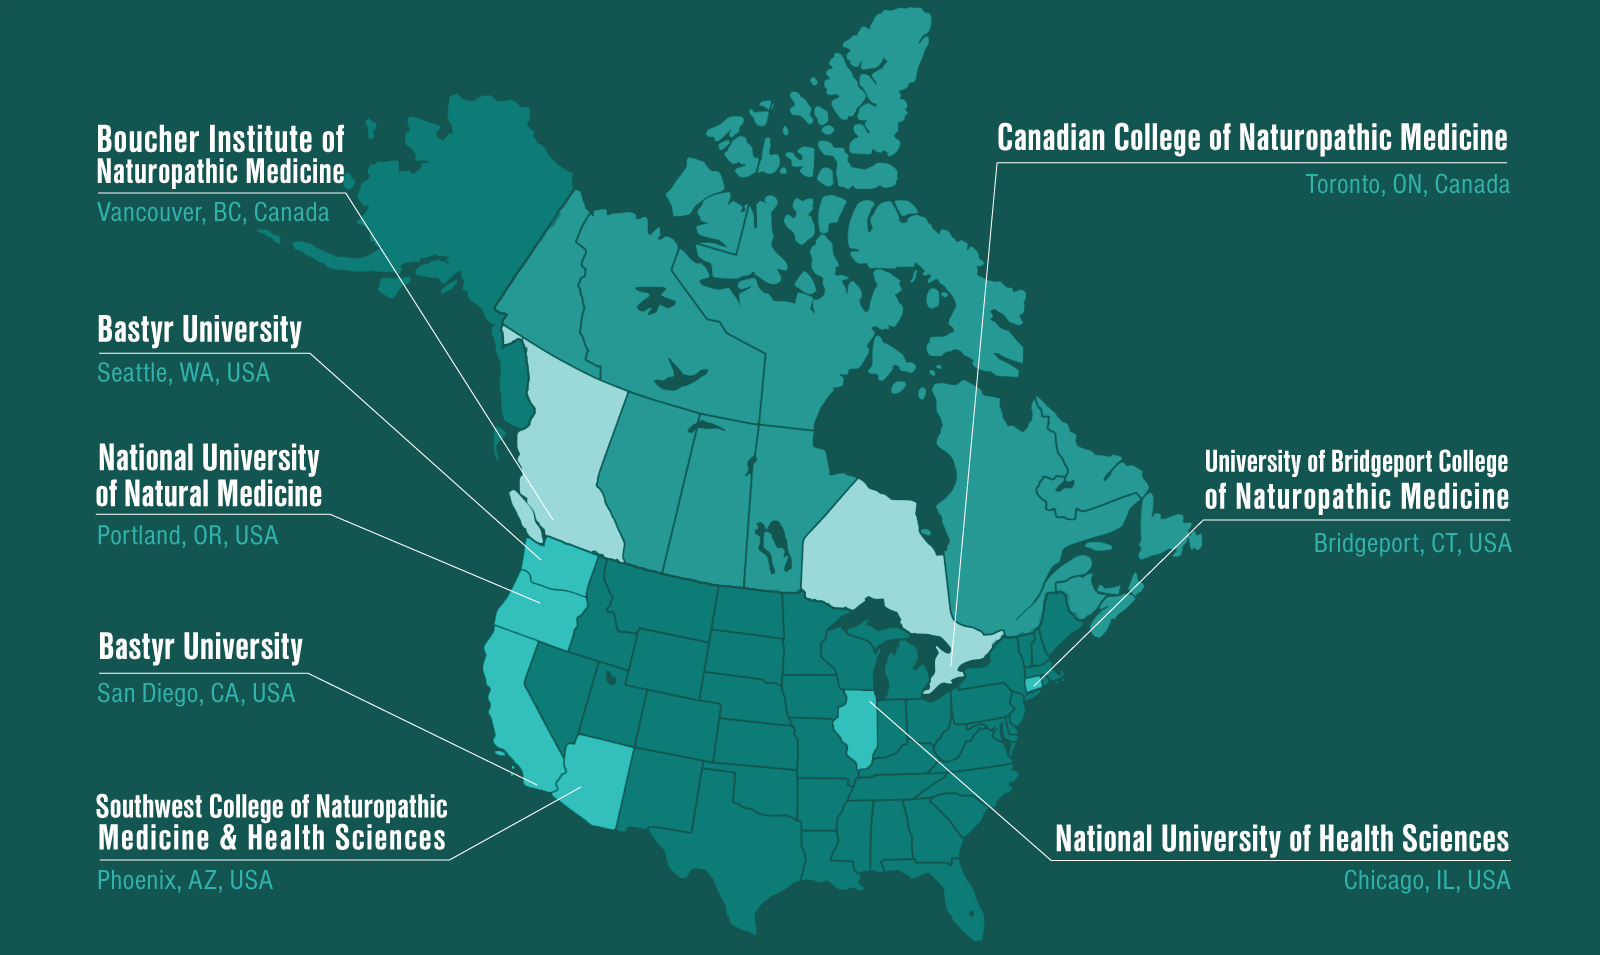 Accredited Naturopathic Schools of North America